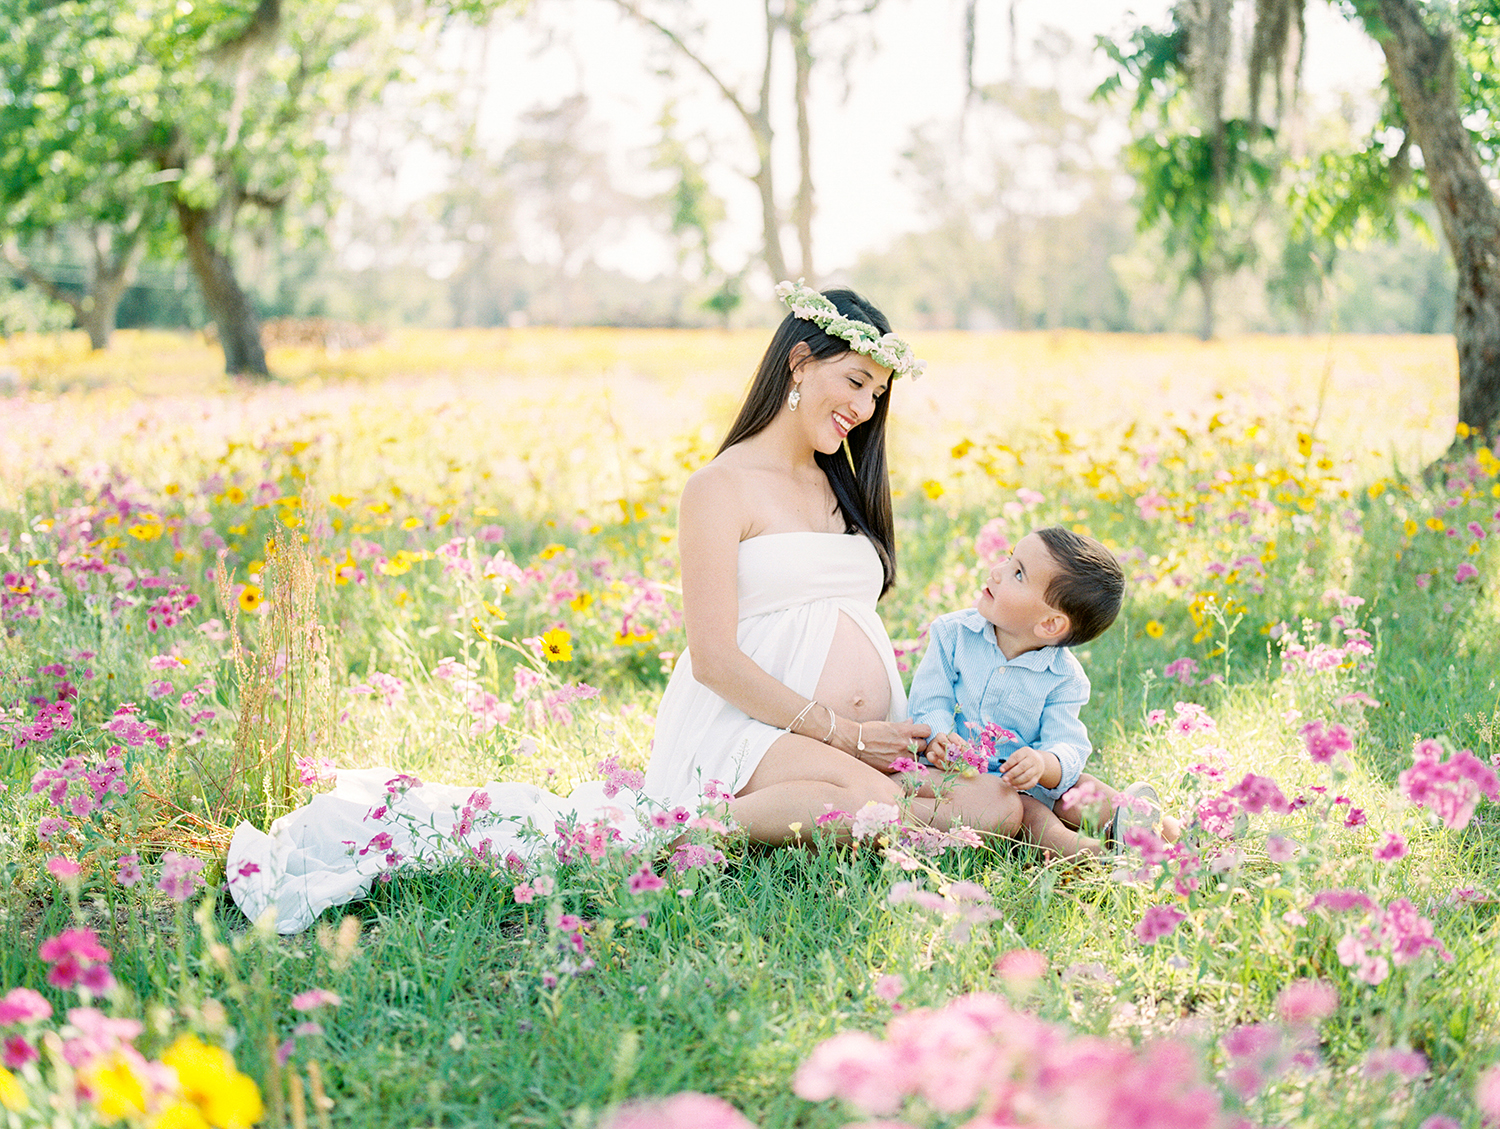 Family Maternity Session in a Flower Field- Lisa Silva Photography- Jacksonville and St. Augustine Florida Fine Art Film Photography- 2.jpg